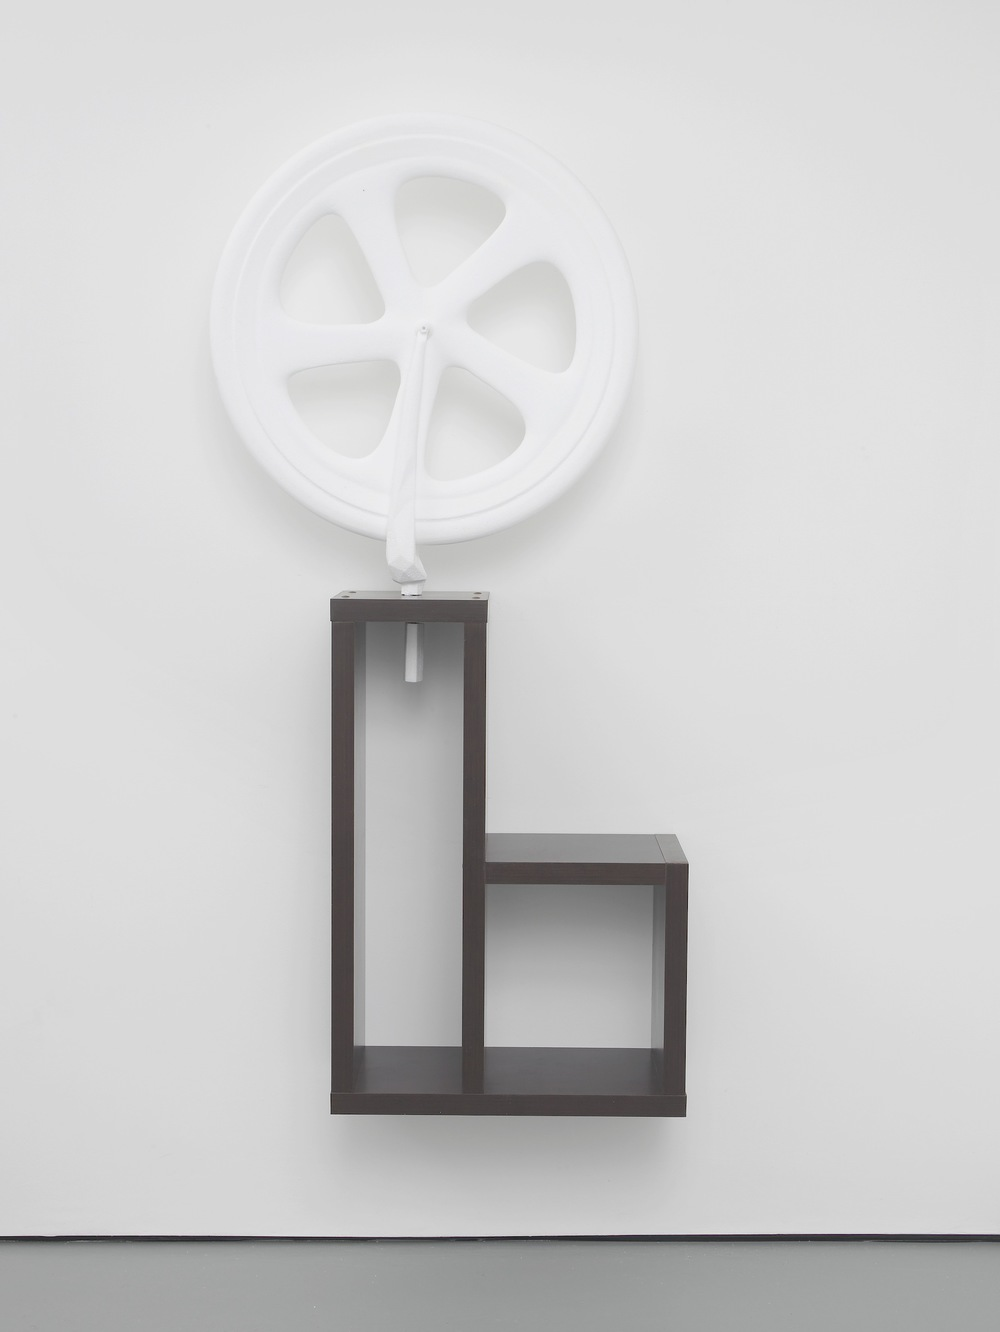 Standardised Form No.5 (bicycle wheel) 2013 3D model in polystyrene on artificial wood support approx 168 x 85 x 29 cm